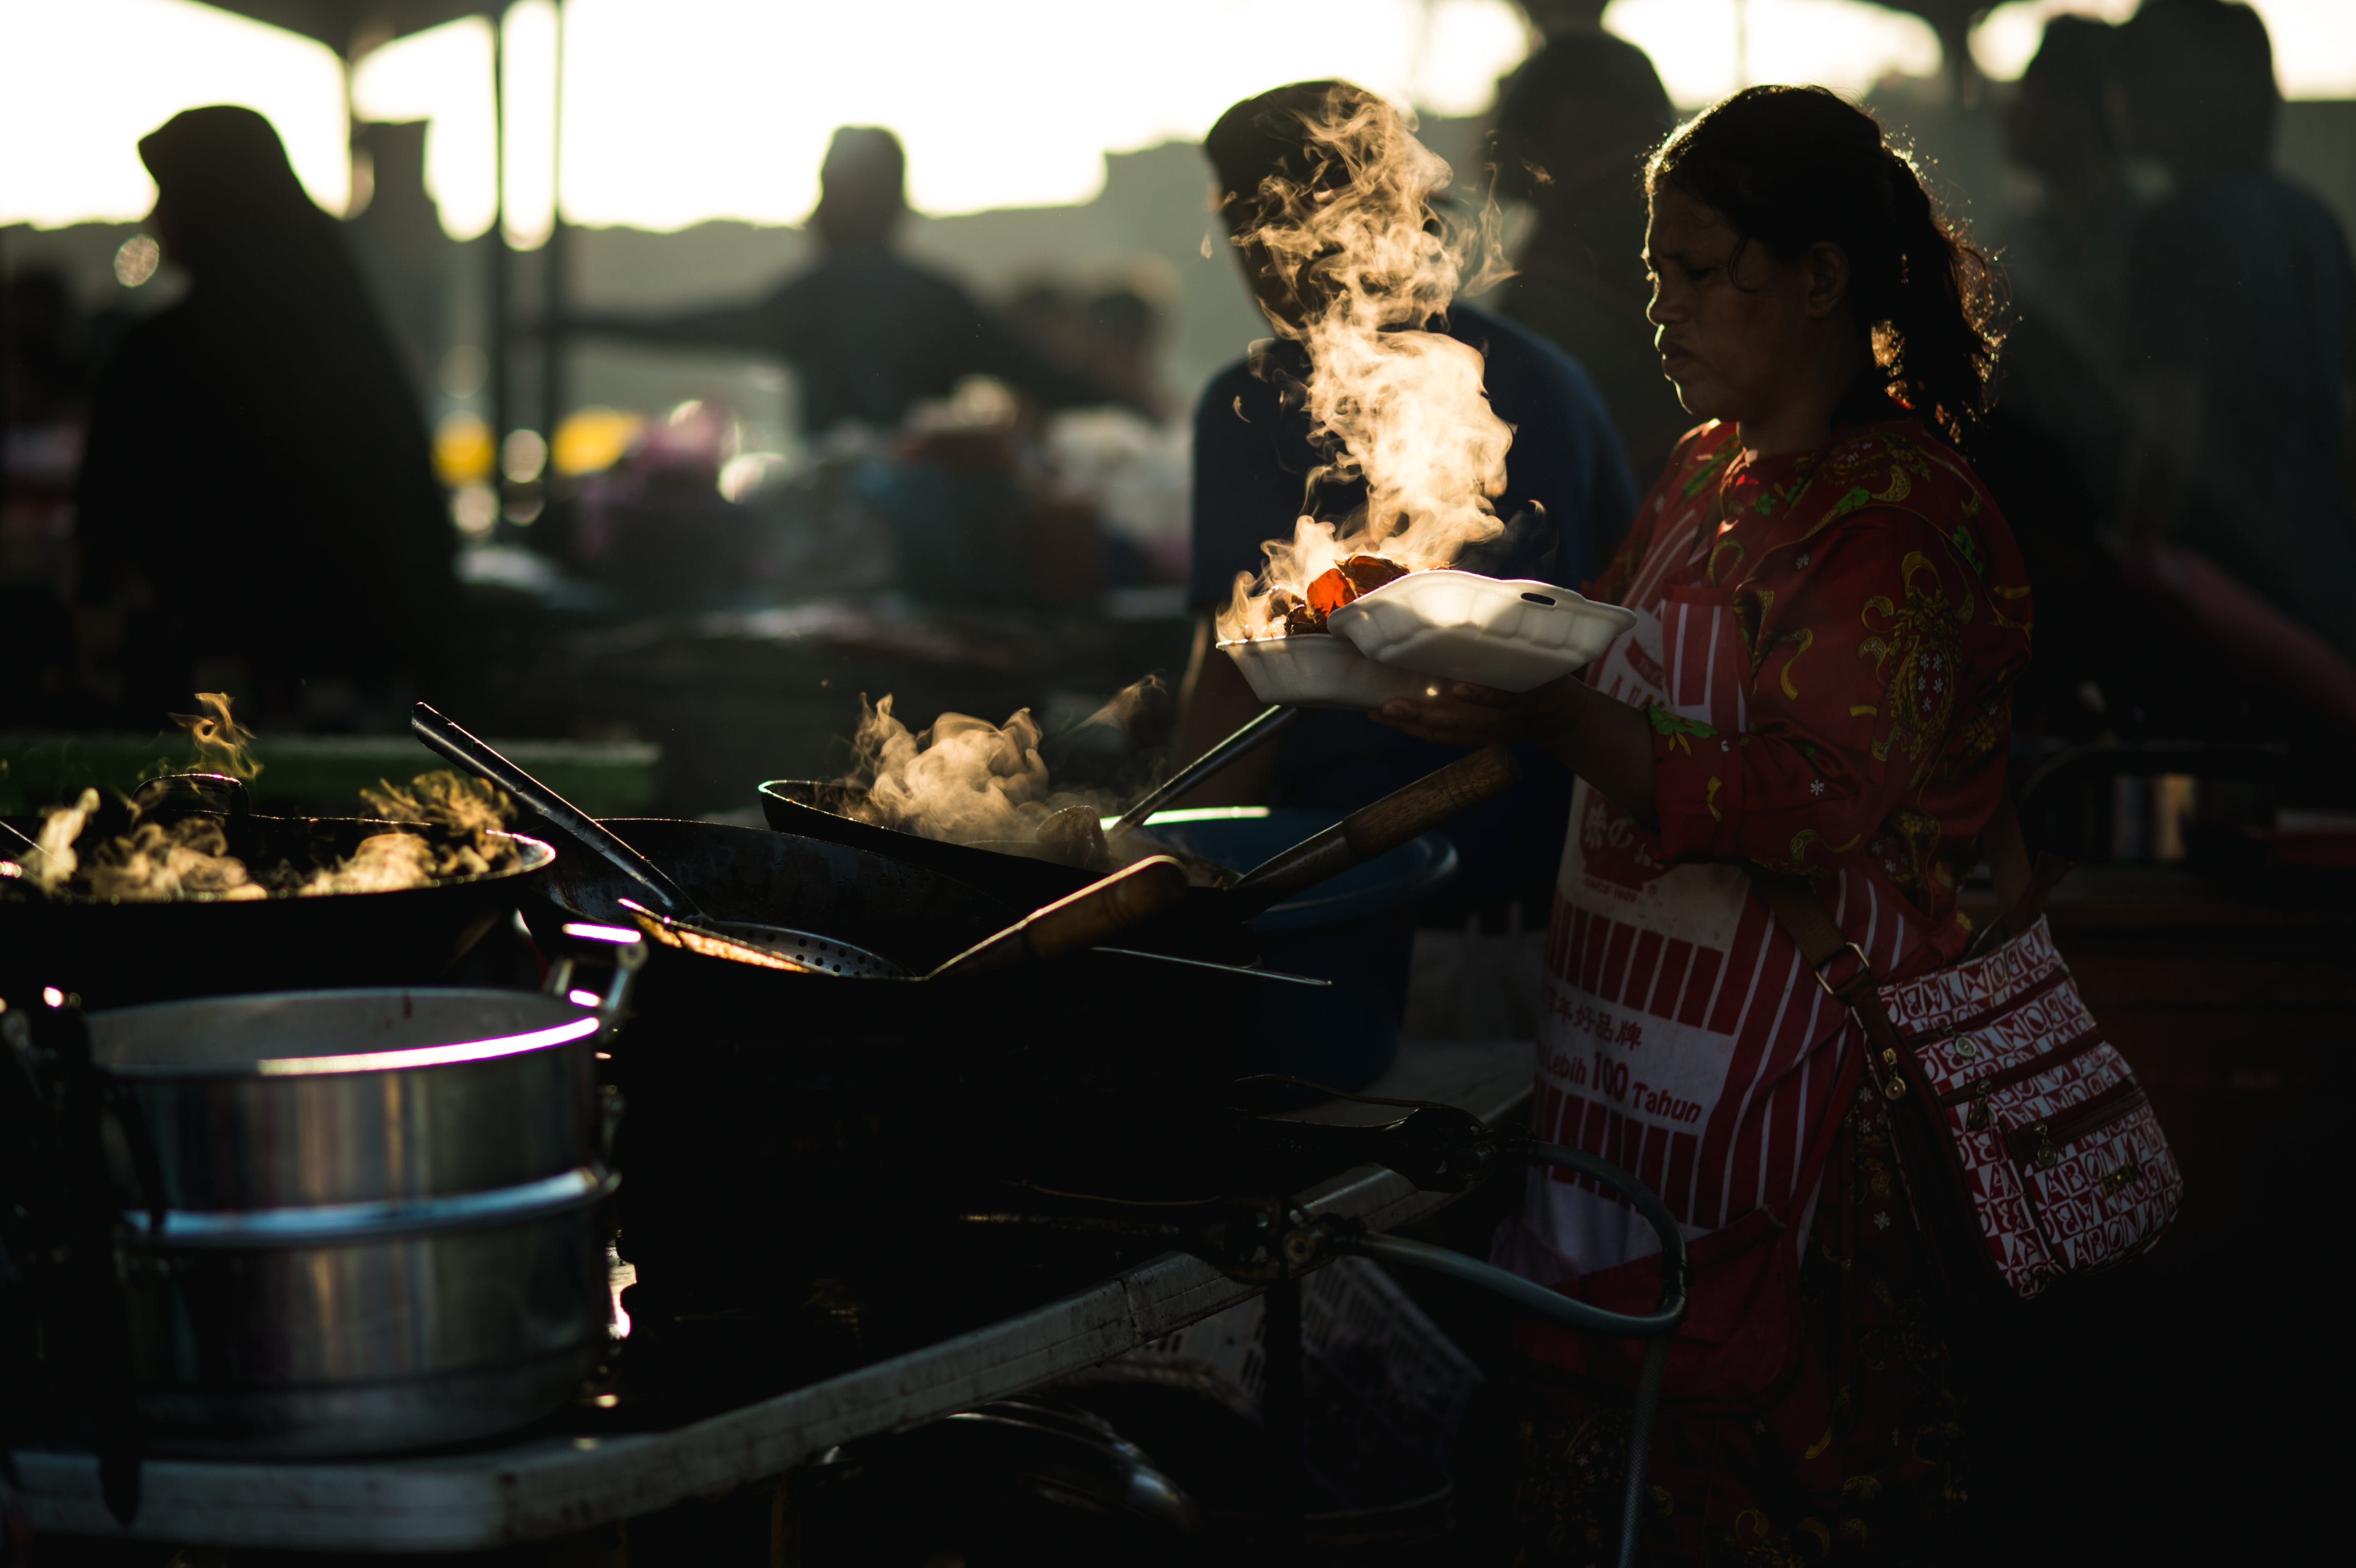 Free stock photo of food, woman, street, cooking